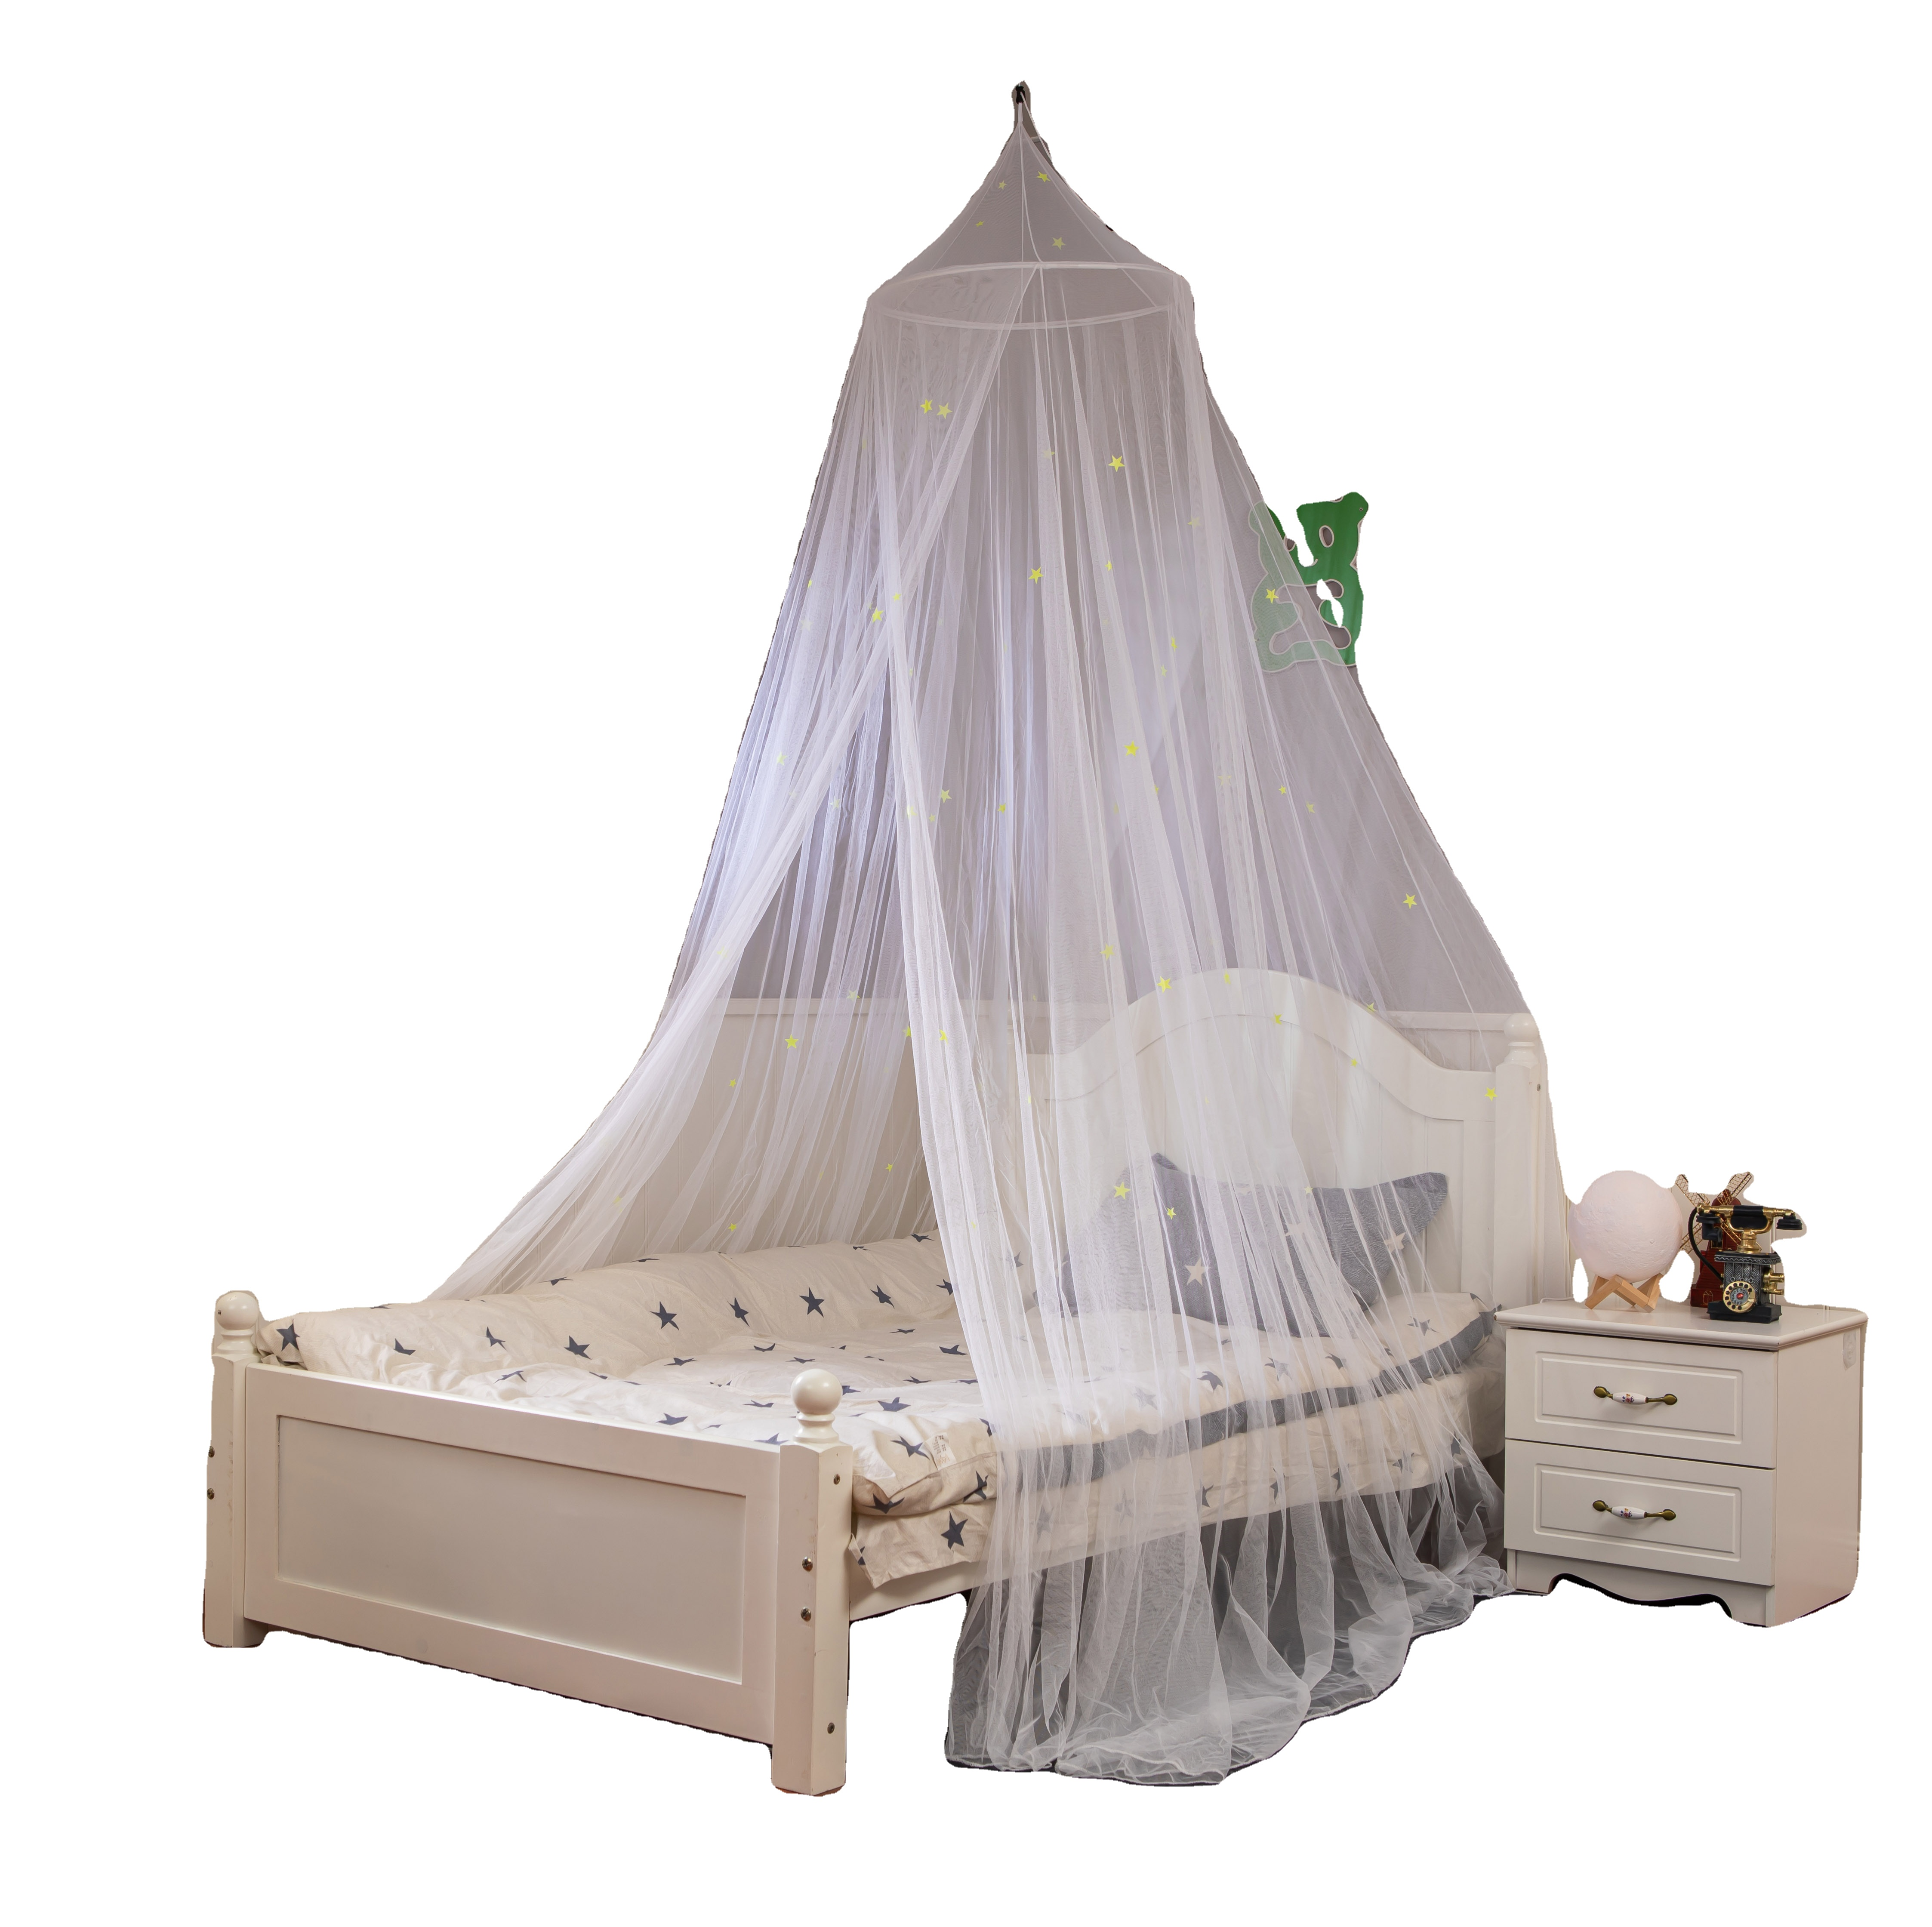 New design Bed Canopy mosquito net with Fluorescent Stars Glow in Dark for kids